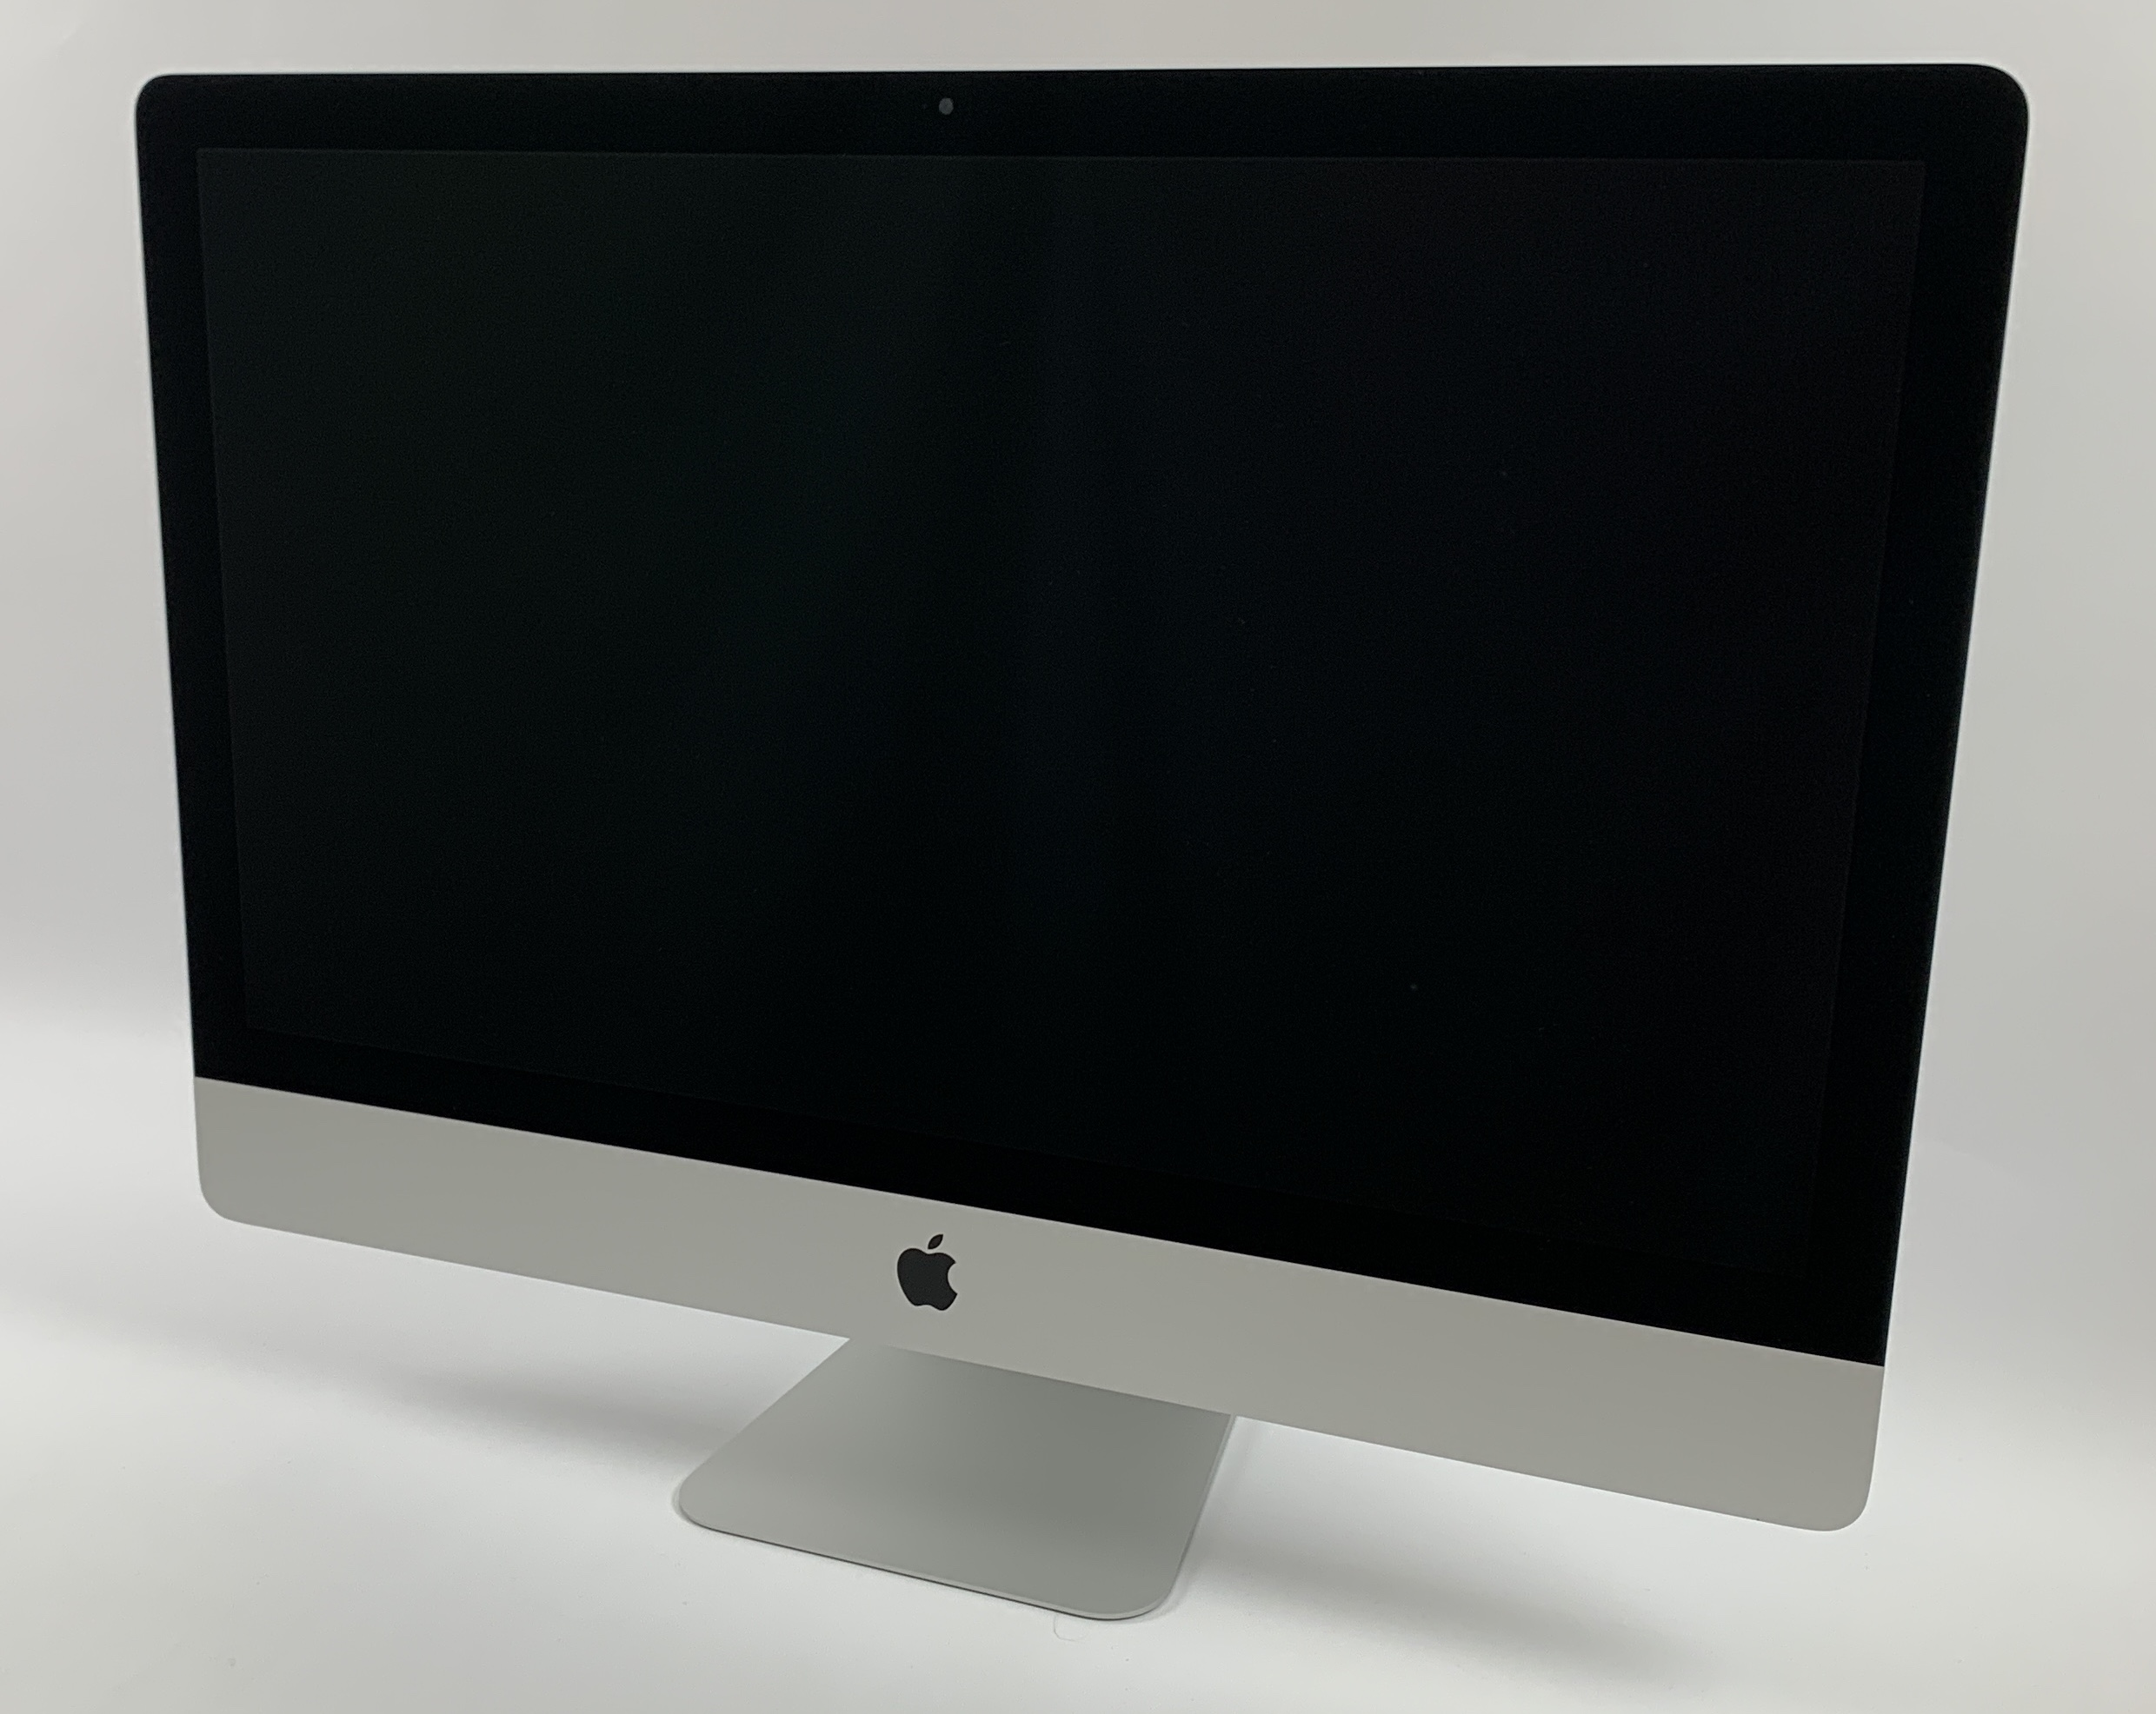 "iMac 27"" Retina 5K Early 2019 (Intel 6-Core i5 3.0 GHz 32 GB RAM 2 TB SSD), Intel 6-Core i5 3.0 GHz, 32 GB RAM, 2 TB SSD (Third-party), bild 1"